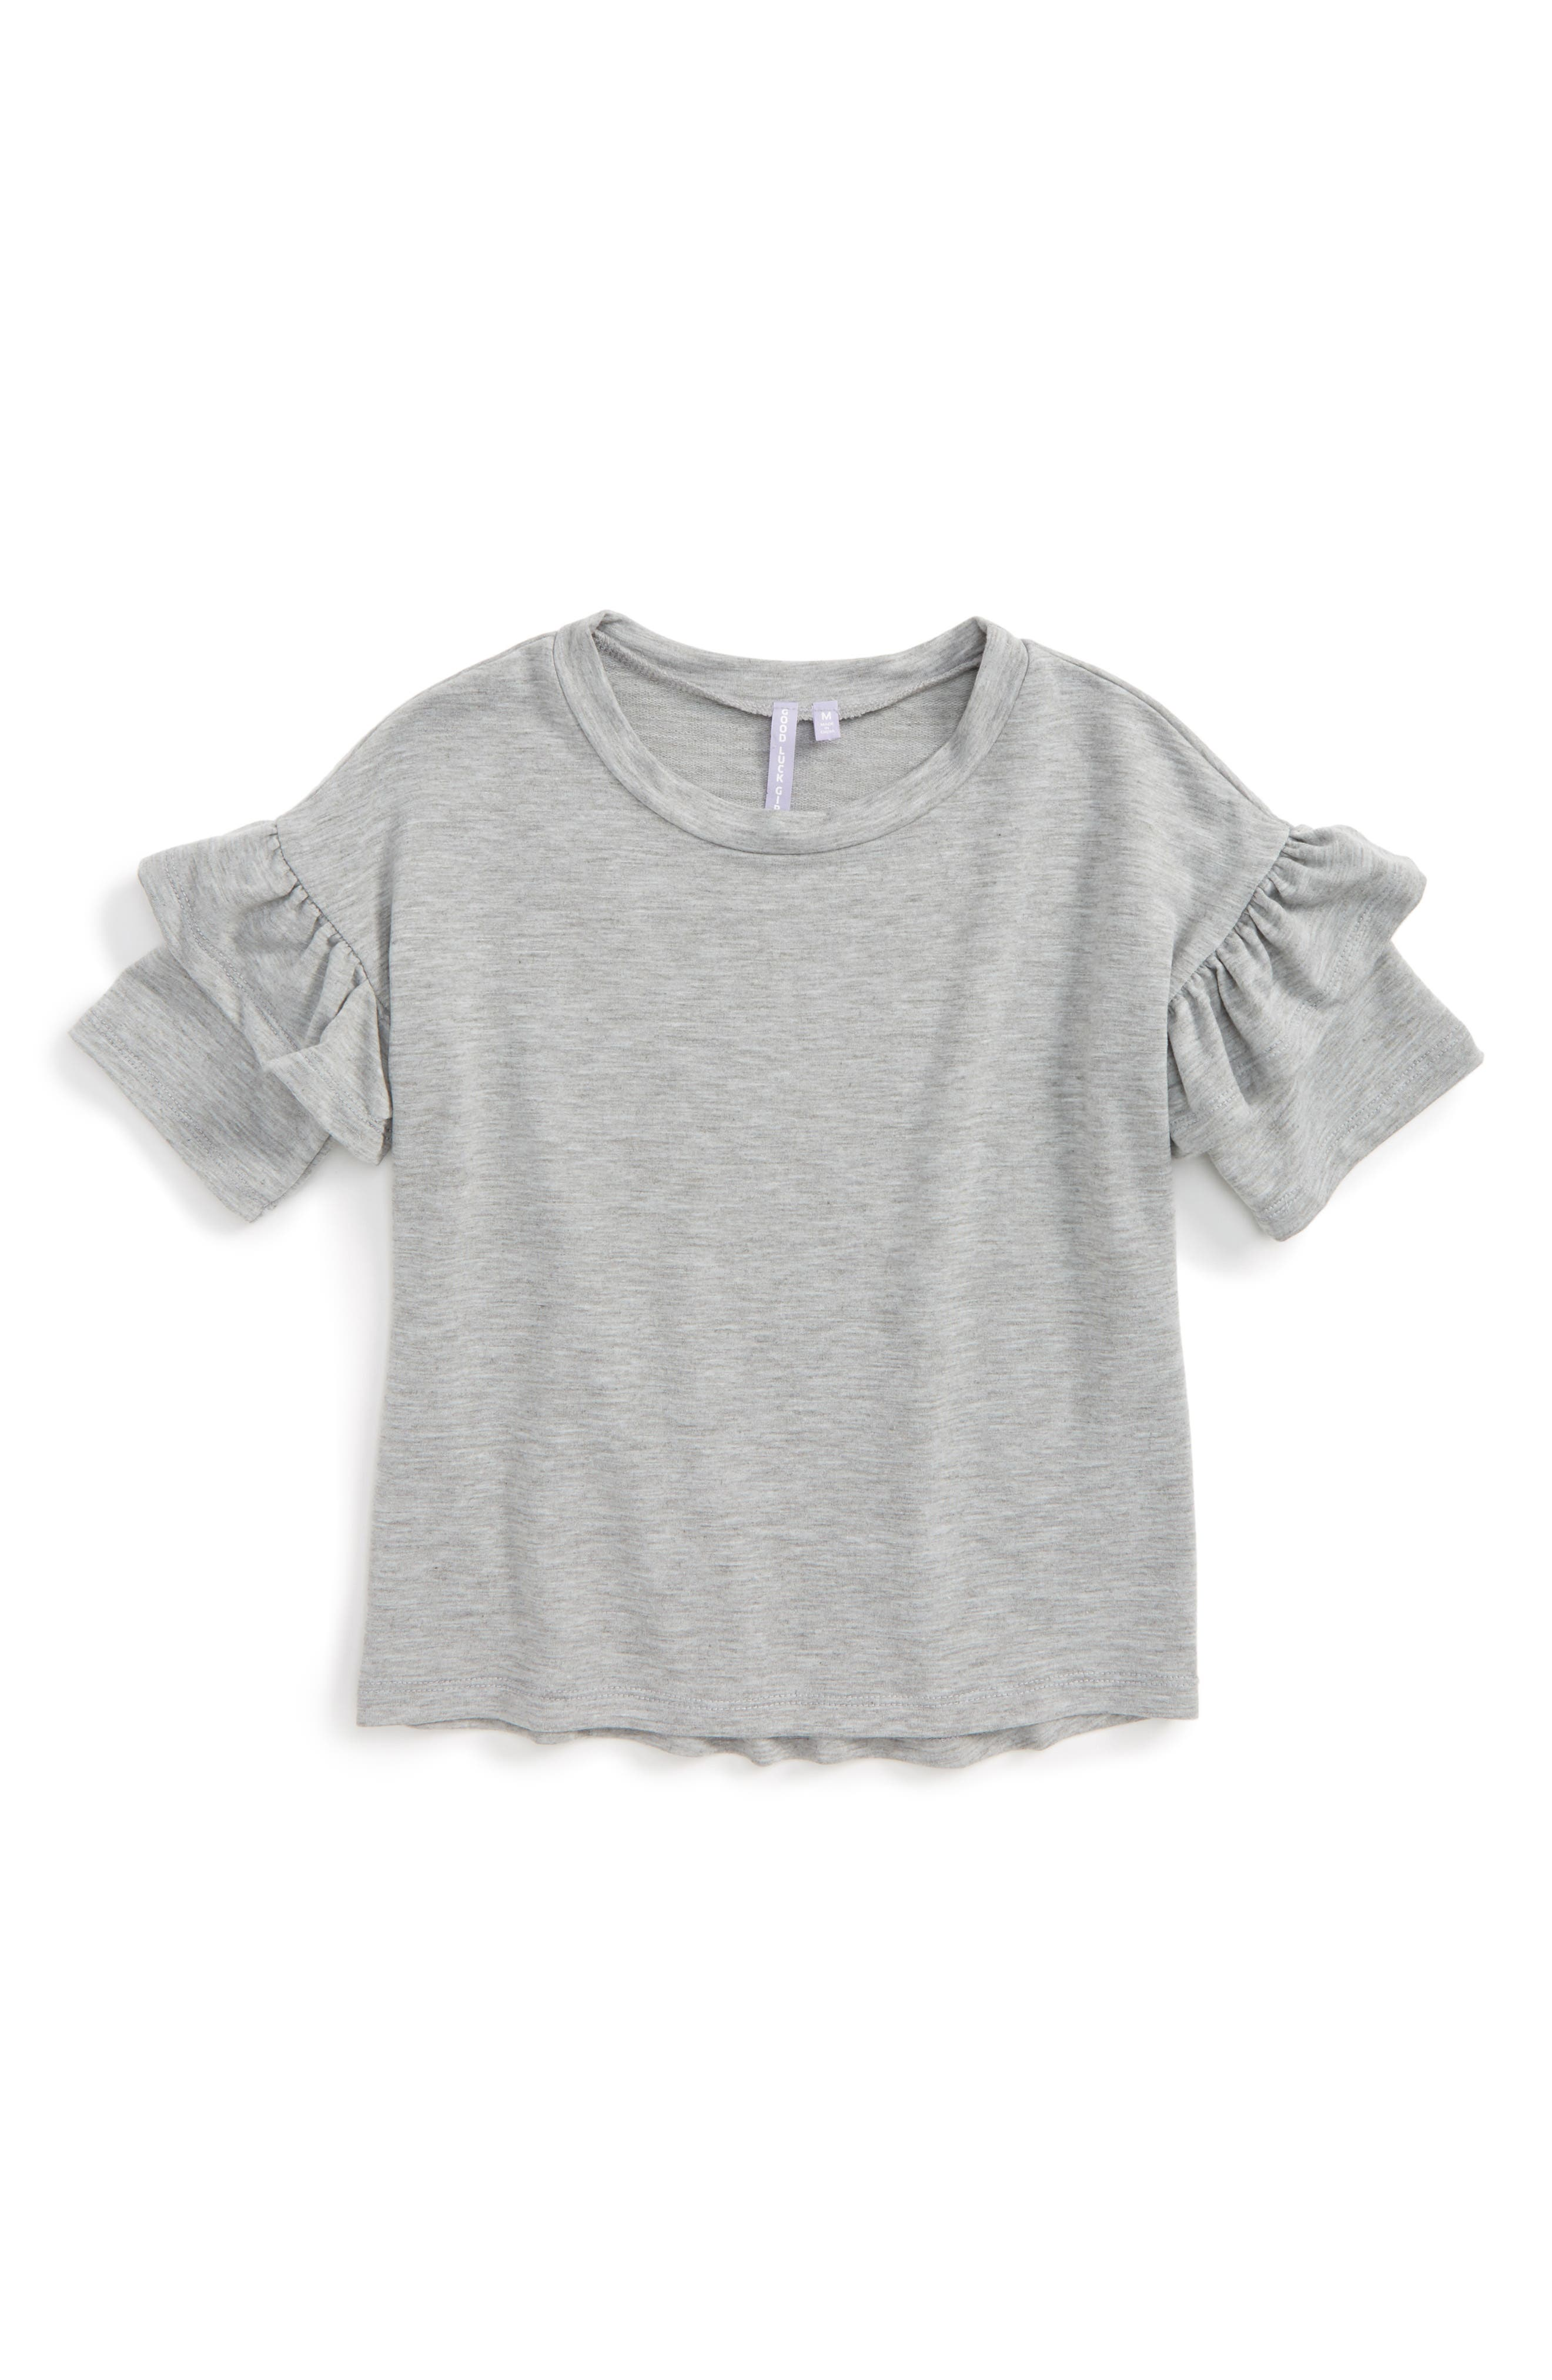 Ruffle Sleeve Tee,                         Main,                         color, 030